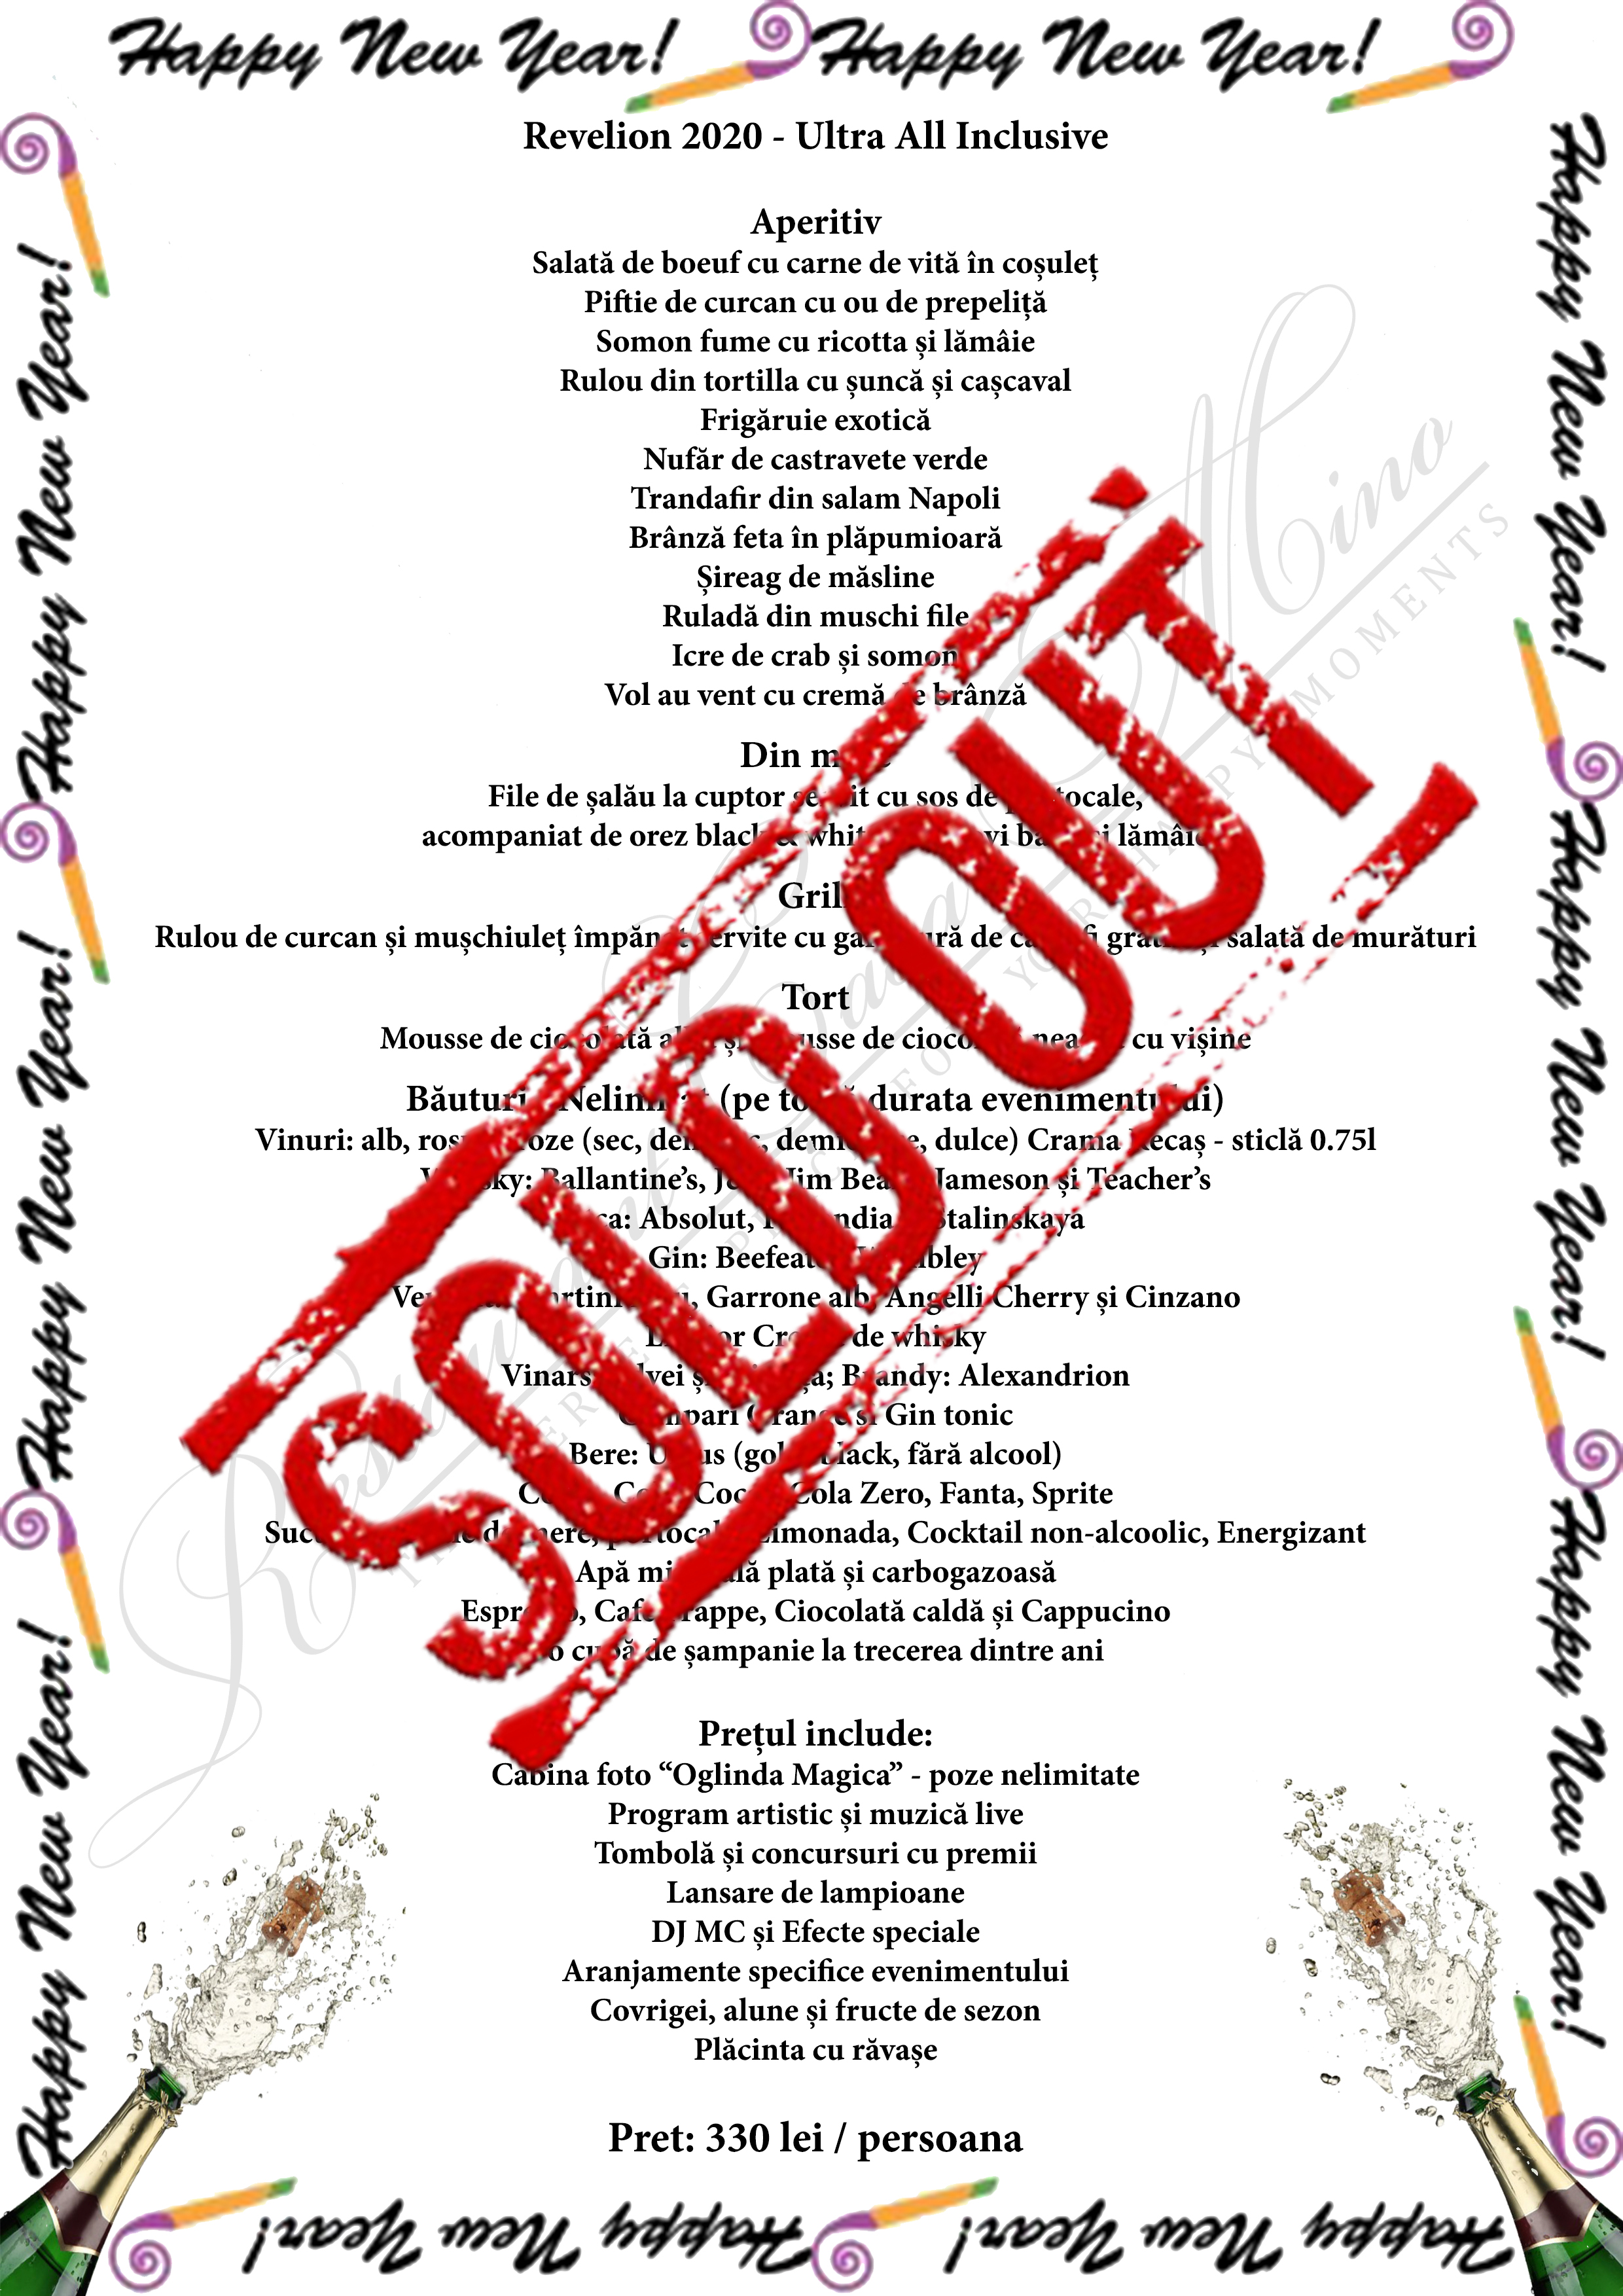 revelion 2020 sold out